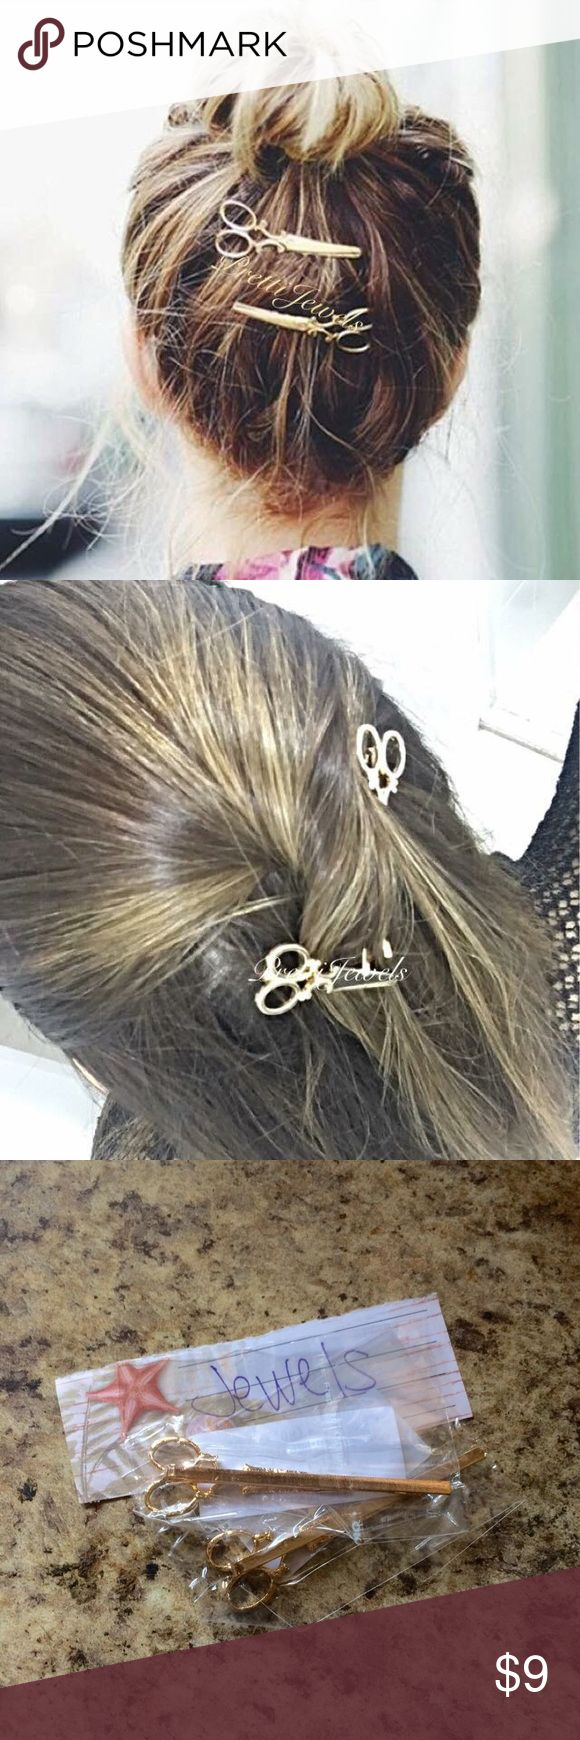 4 pc Scissors Hair Clip Gold Toned ❄️Brand new ❌ FIRM PRICE❄️ Yes I Bundle❤️  No holds. Any holds/offers will be ignored!    Orders are processed in 2-4 biz days, excludes transit time, holidays & weekends. Comes w tracking.                     _____________________                                  ✨Gold or silver are available✨   Hair stylist hair pin barrette Clip stocking stuffer gift Christmas Accessories Hair Accessories